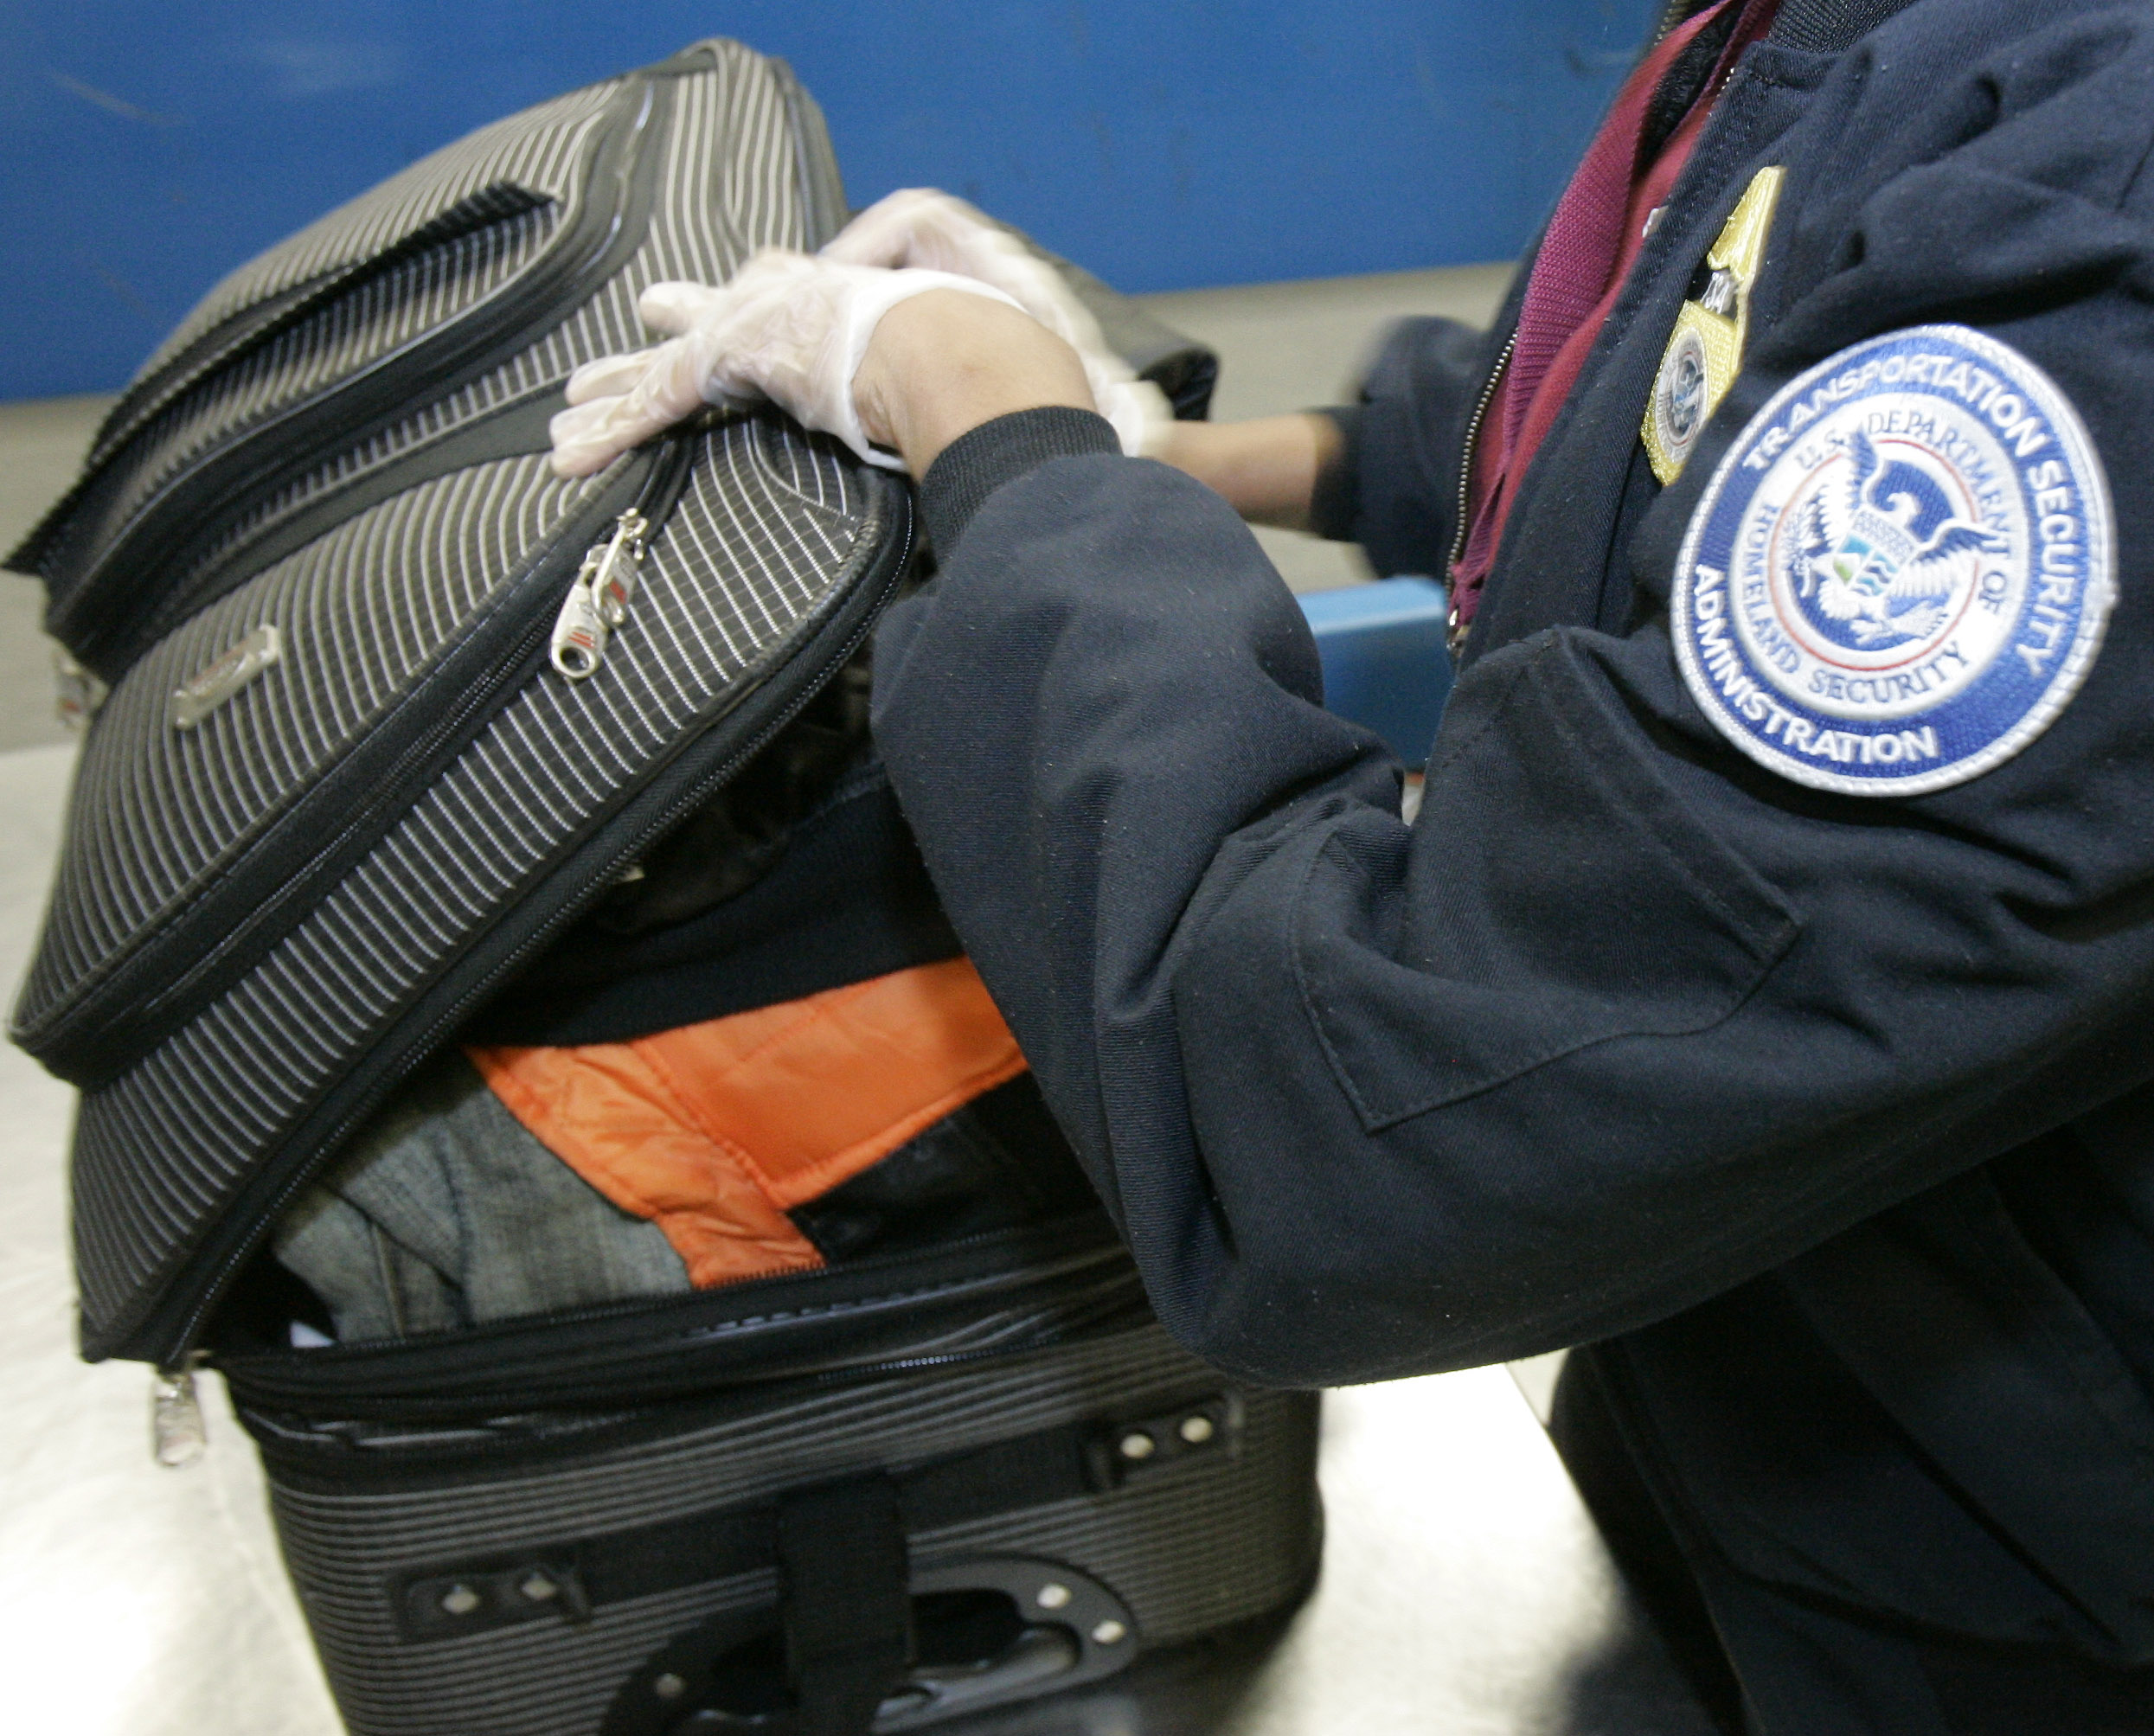 Carry-on or checked baggage? Holiday travel tips from the TSA